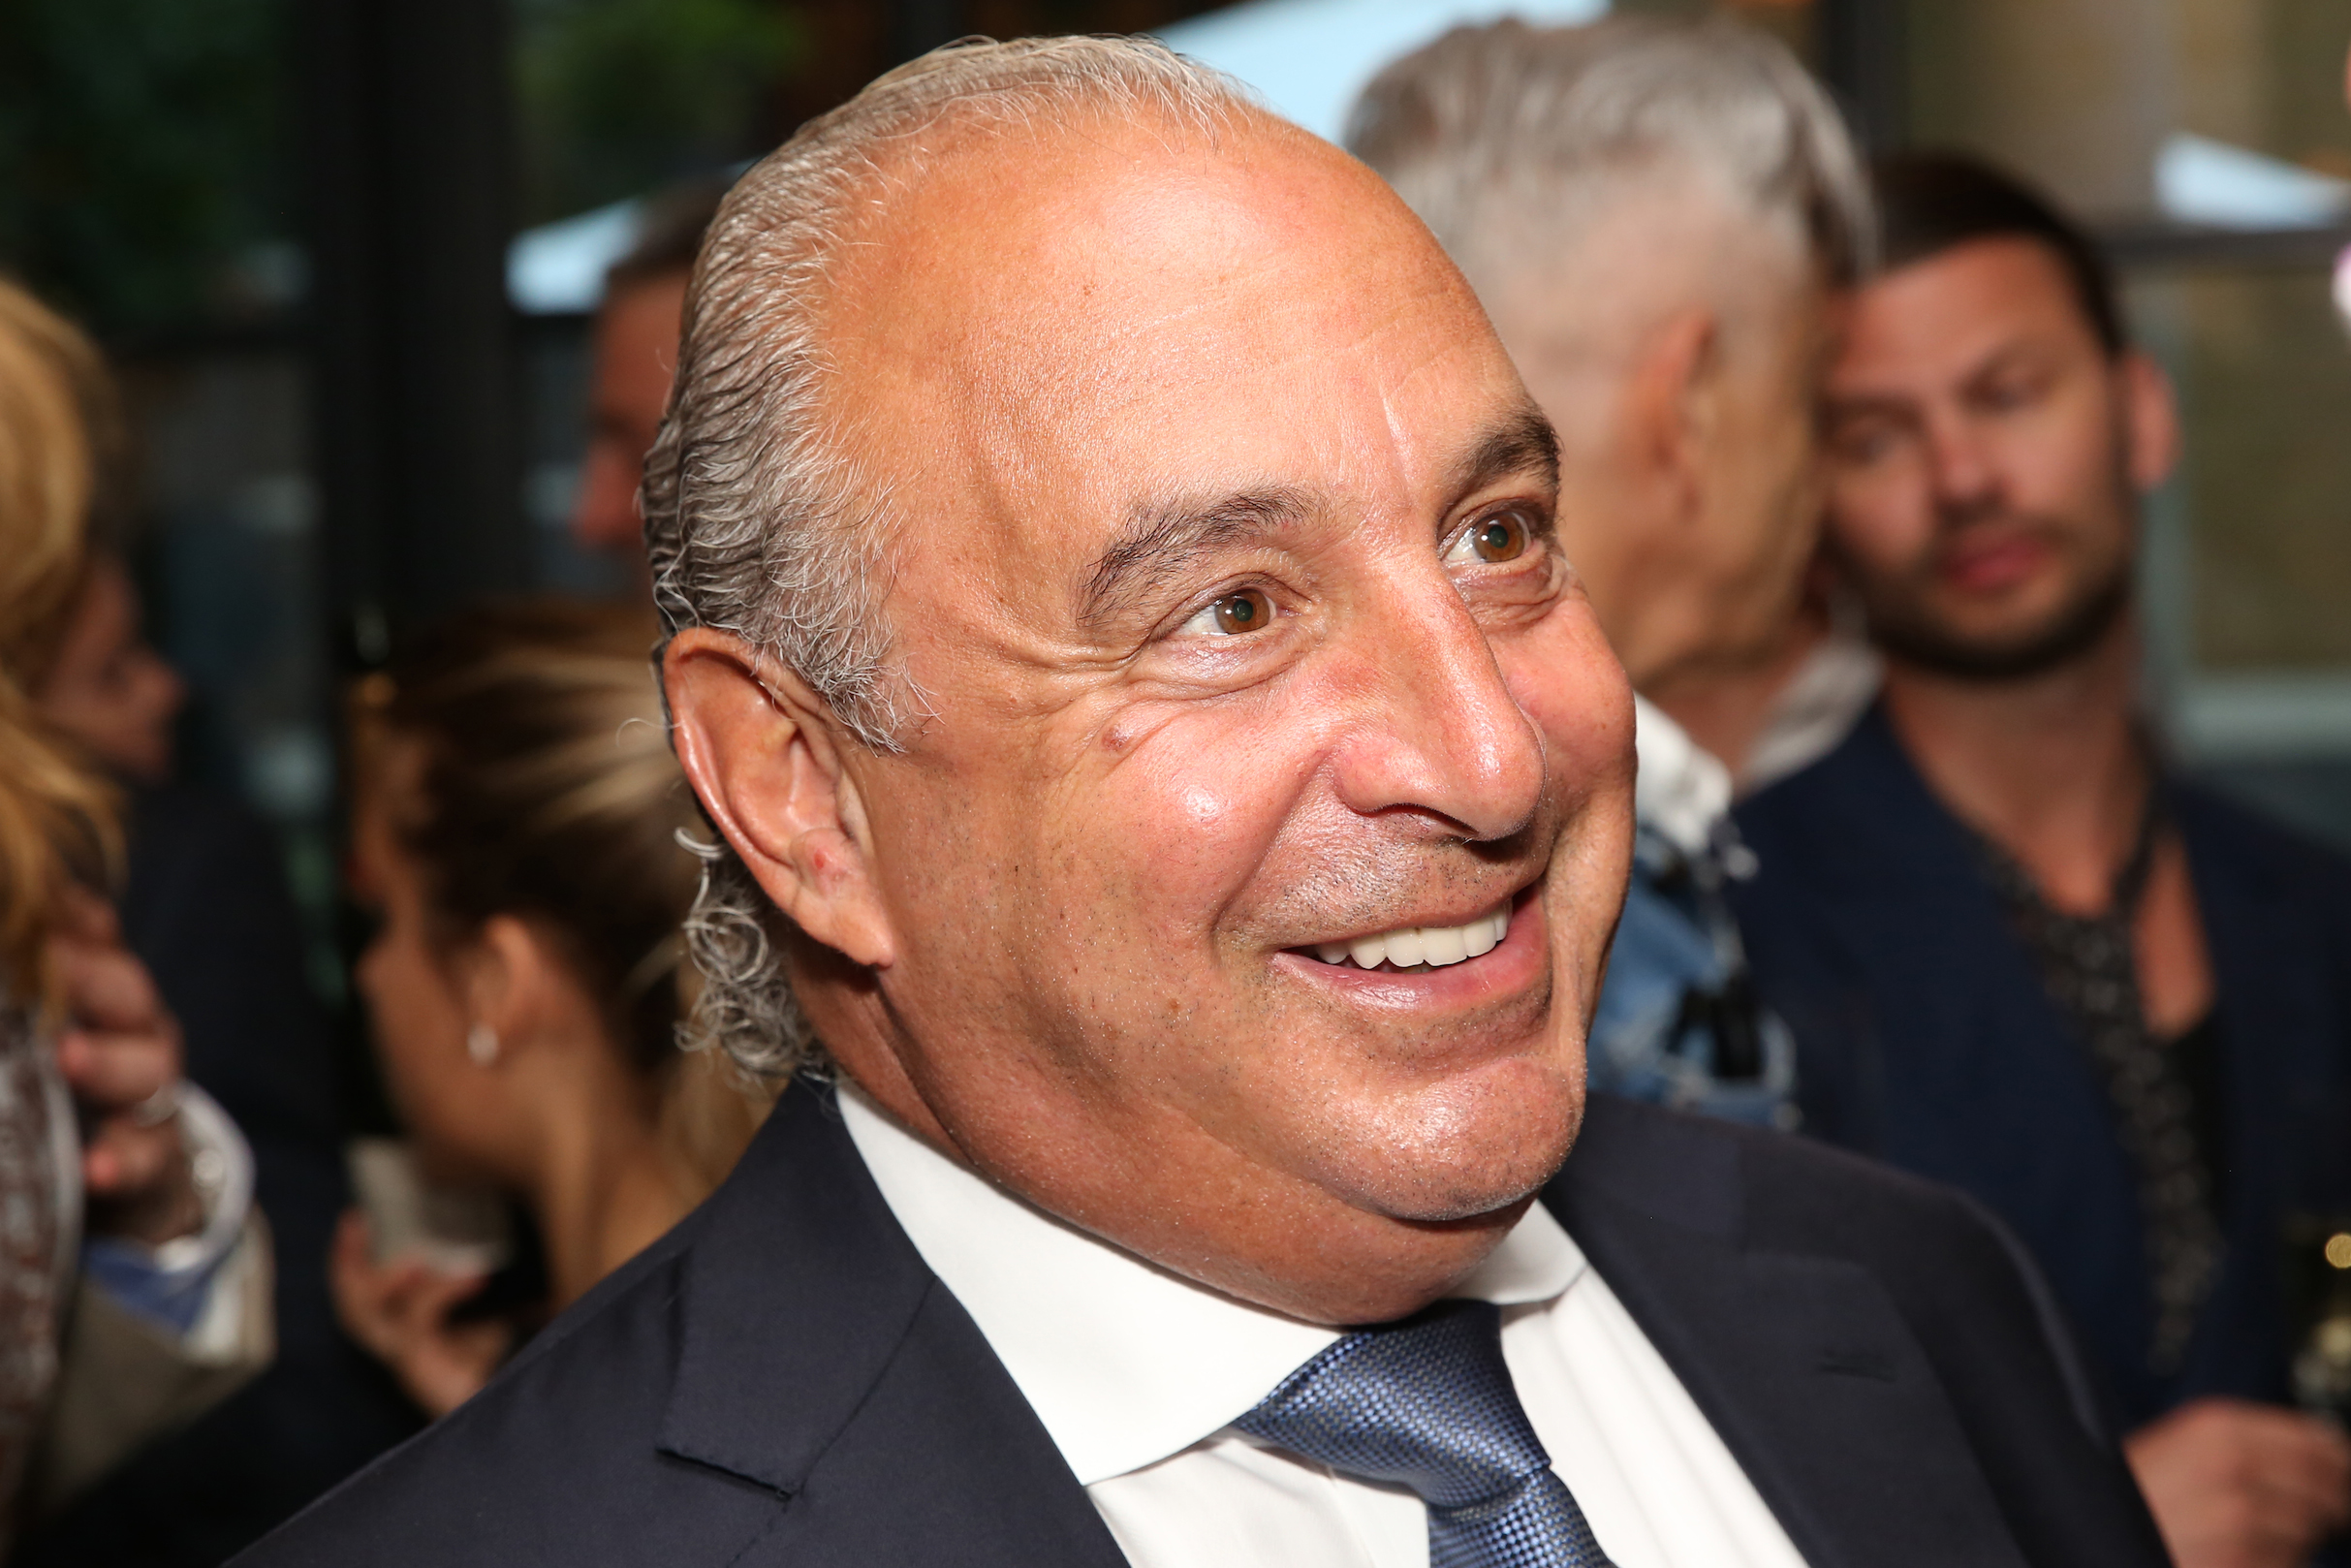 Sir Philip Green, the businessman at the center of 'Britain's MeToo scandal'